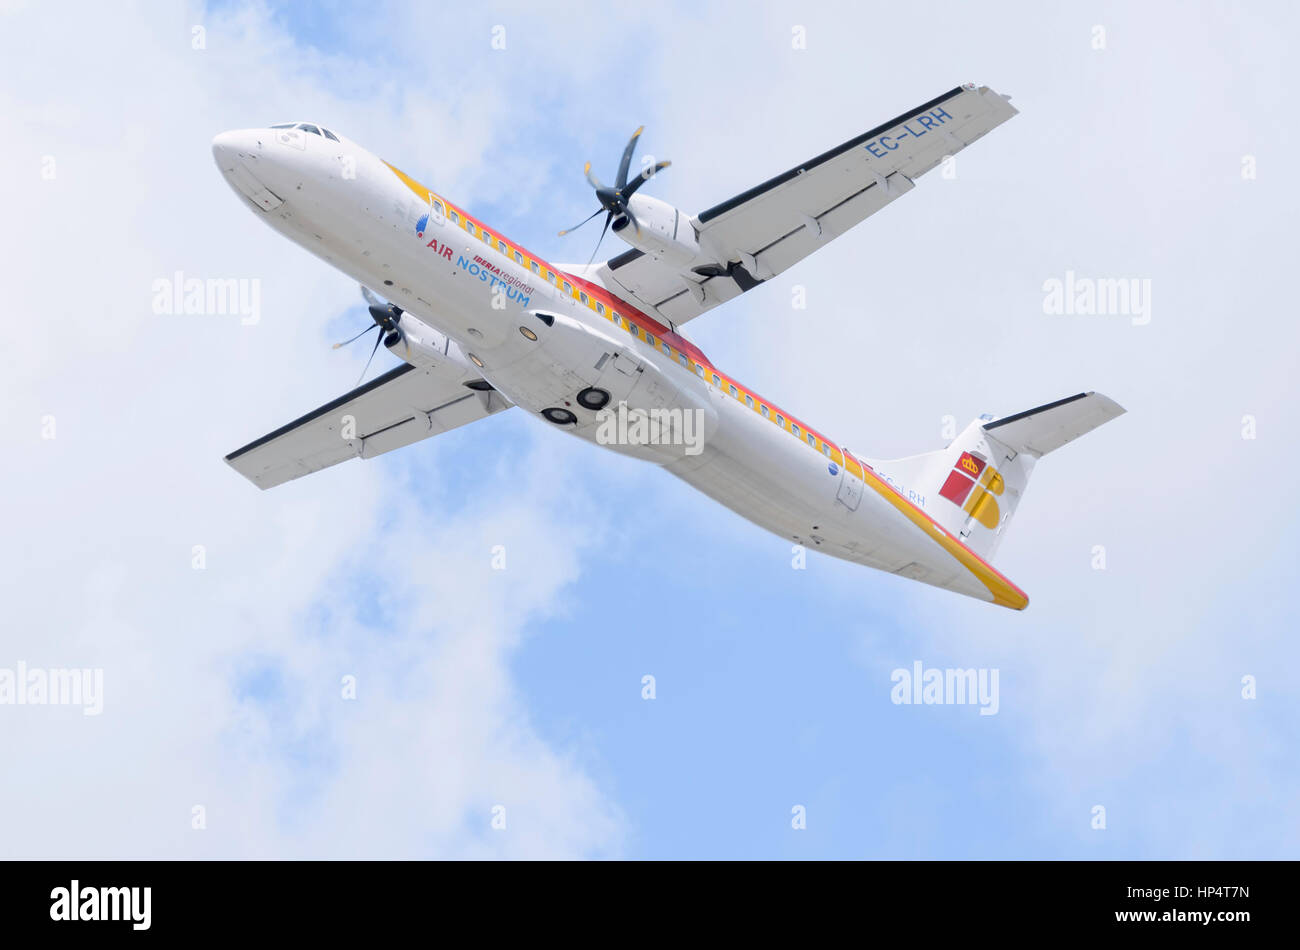 Plane ATR 72 600, of Air Nostrum airline, is taking off from Madrid - Barajas, Adolfo Suarez airport. Regional travels. - Stock Image